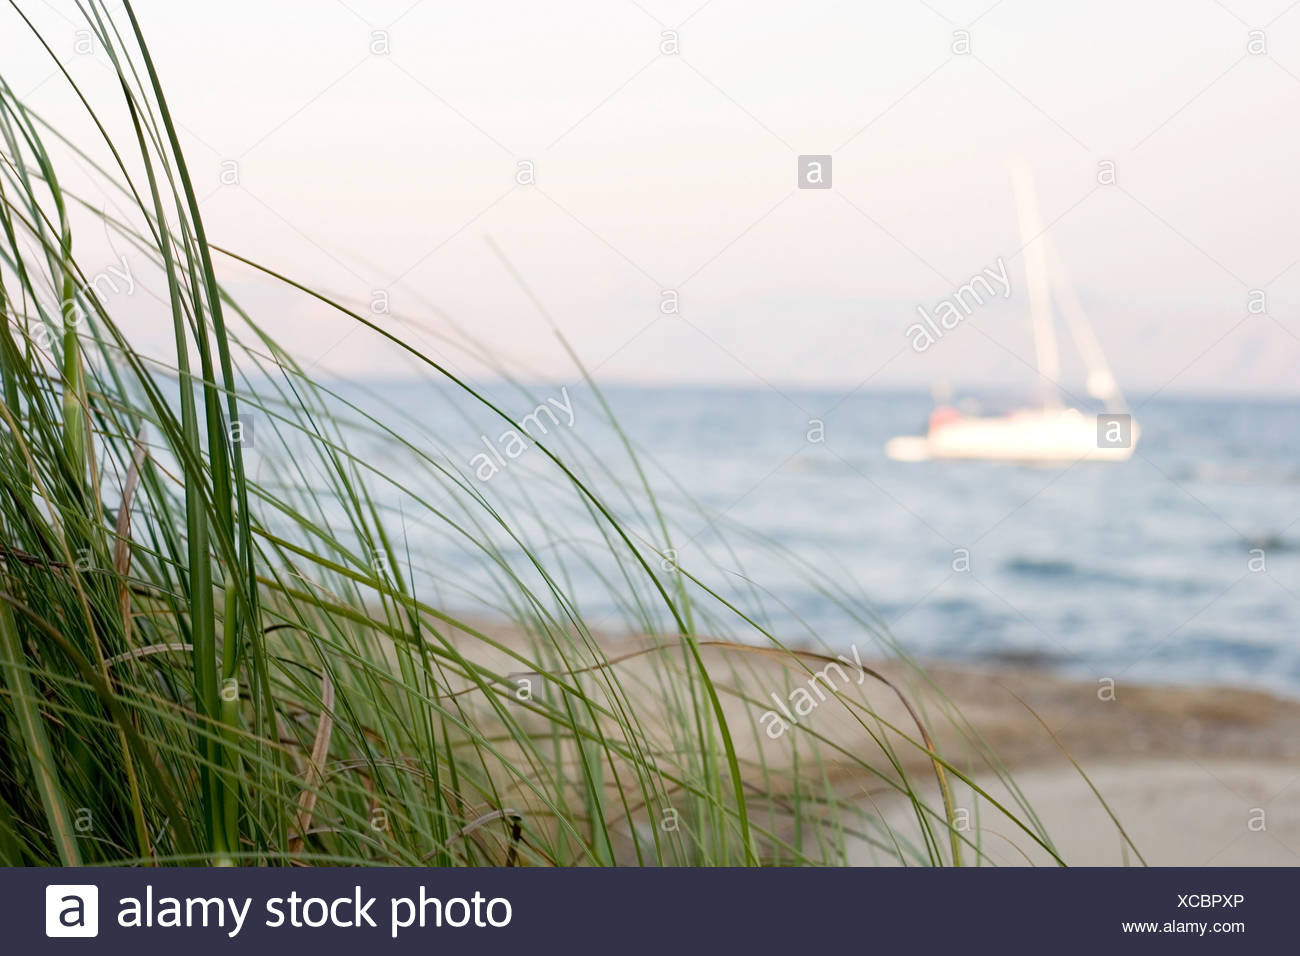 Dune grass on the beach and a yacht in the back - Stock Image